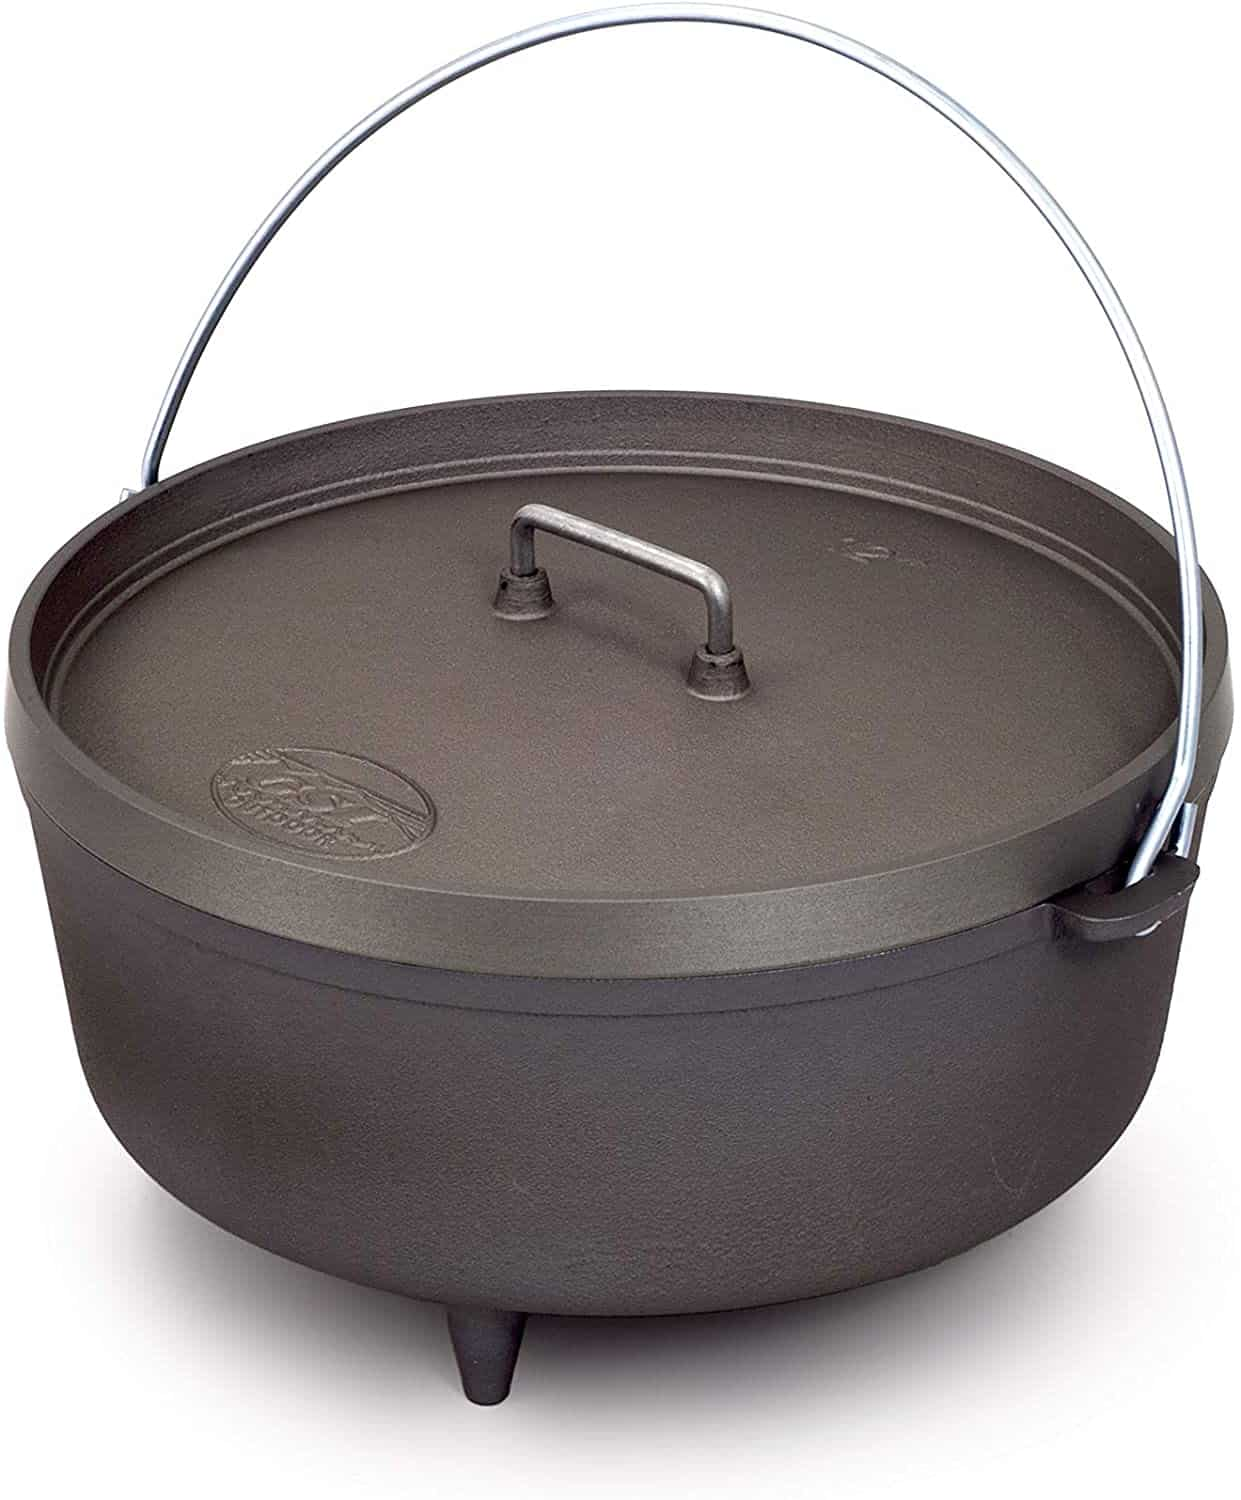 Best Hard Anodized Dutch Oven: GSI Outdoors